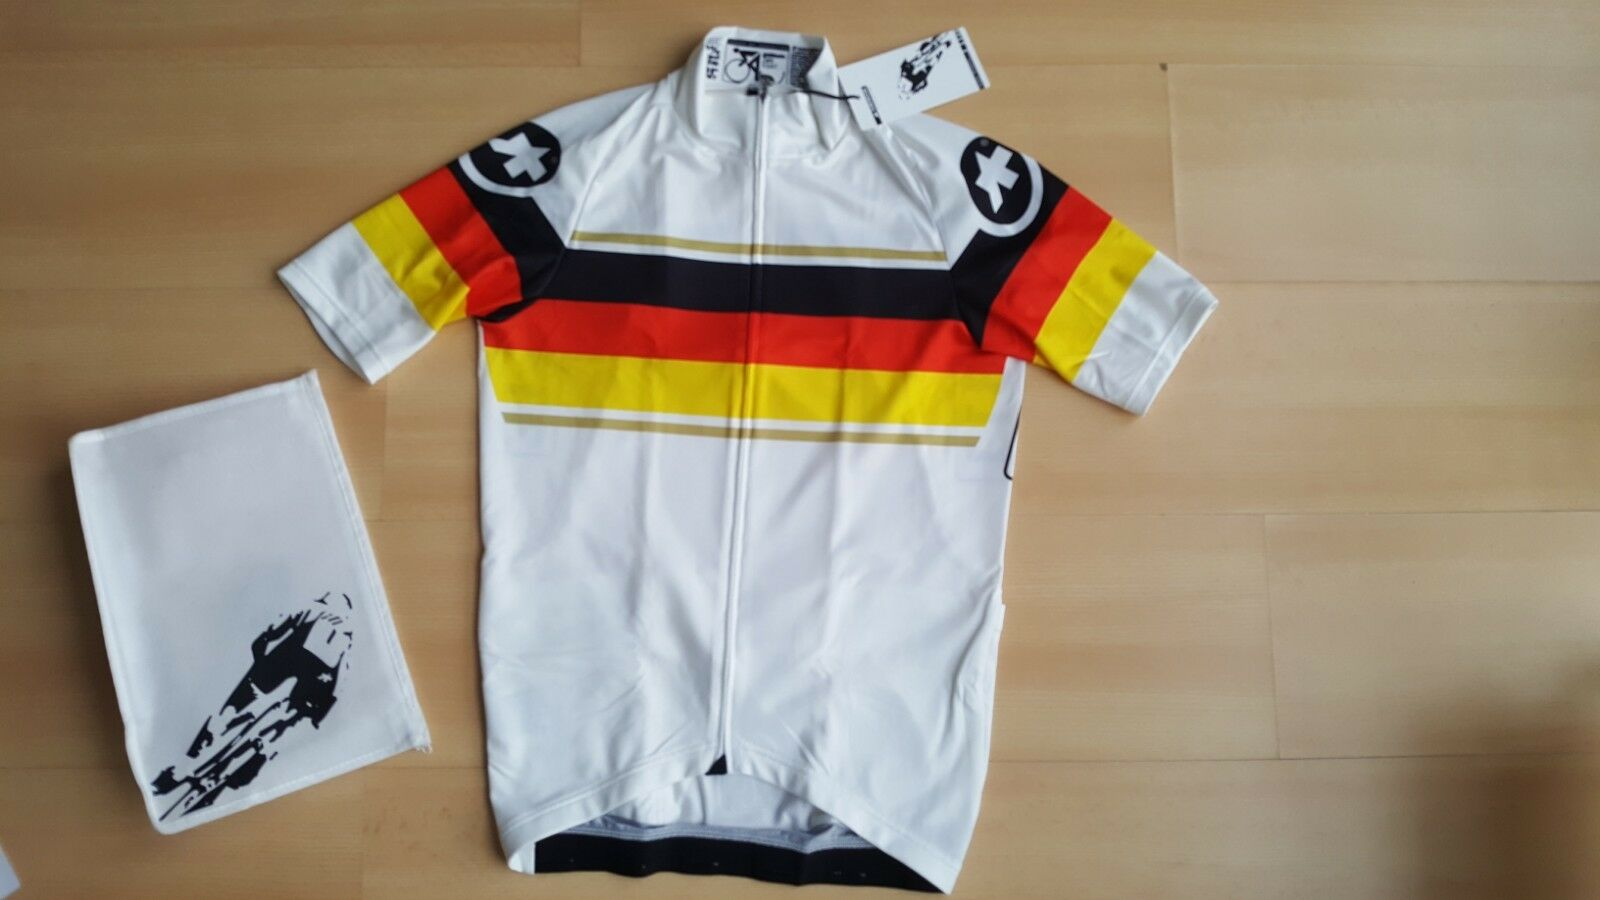 ASSOS SS.neoPro Cycling Jersey Germany Deutschland Colours Men's Size S